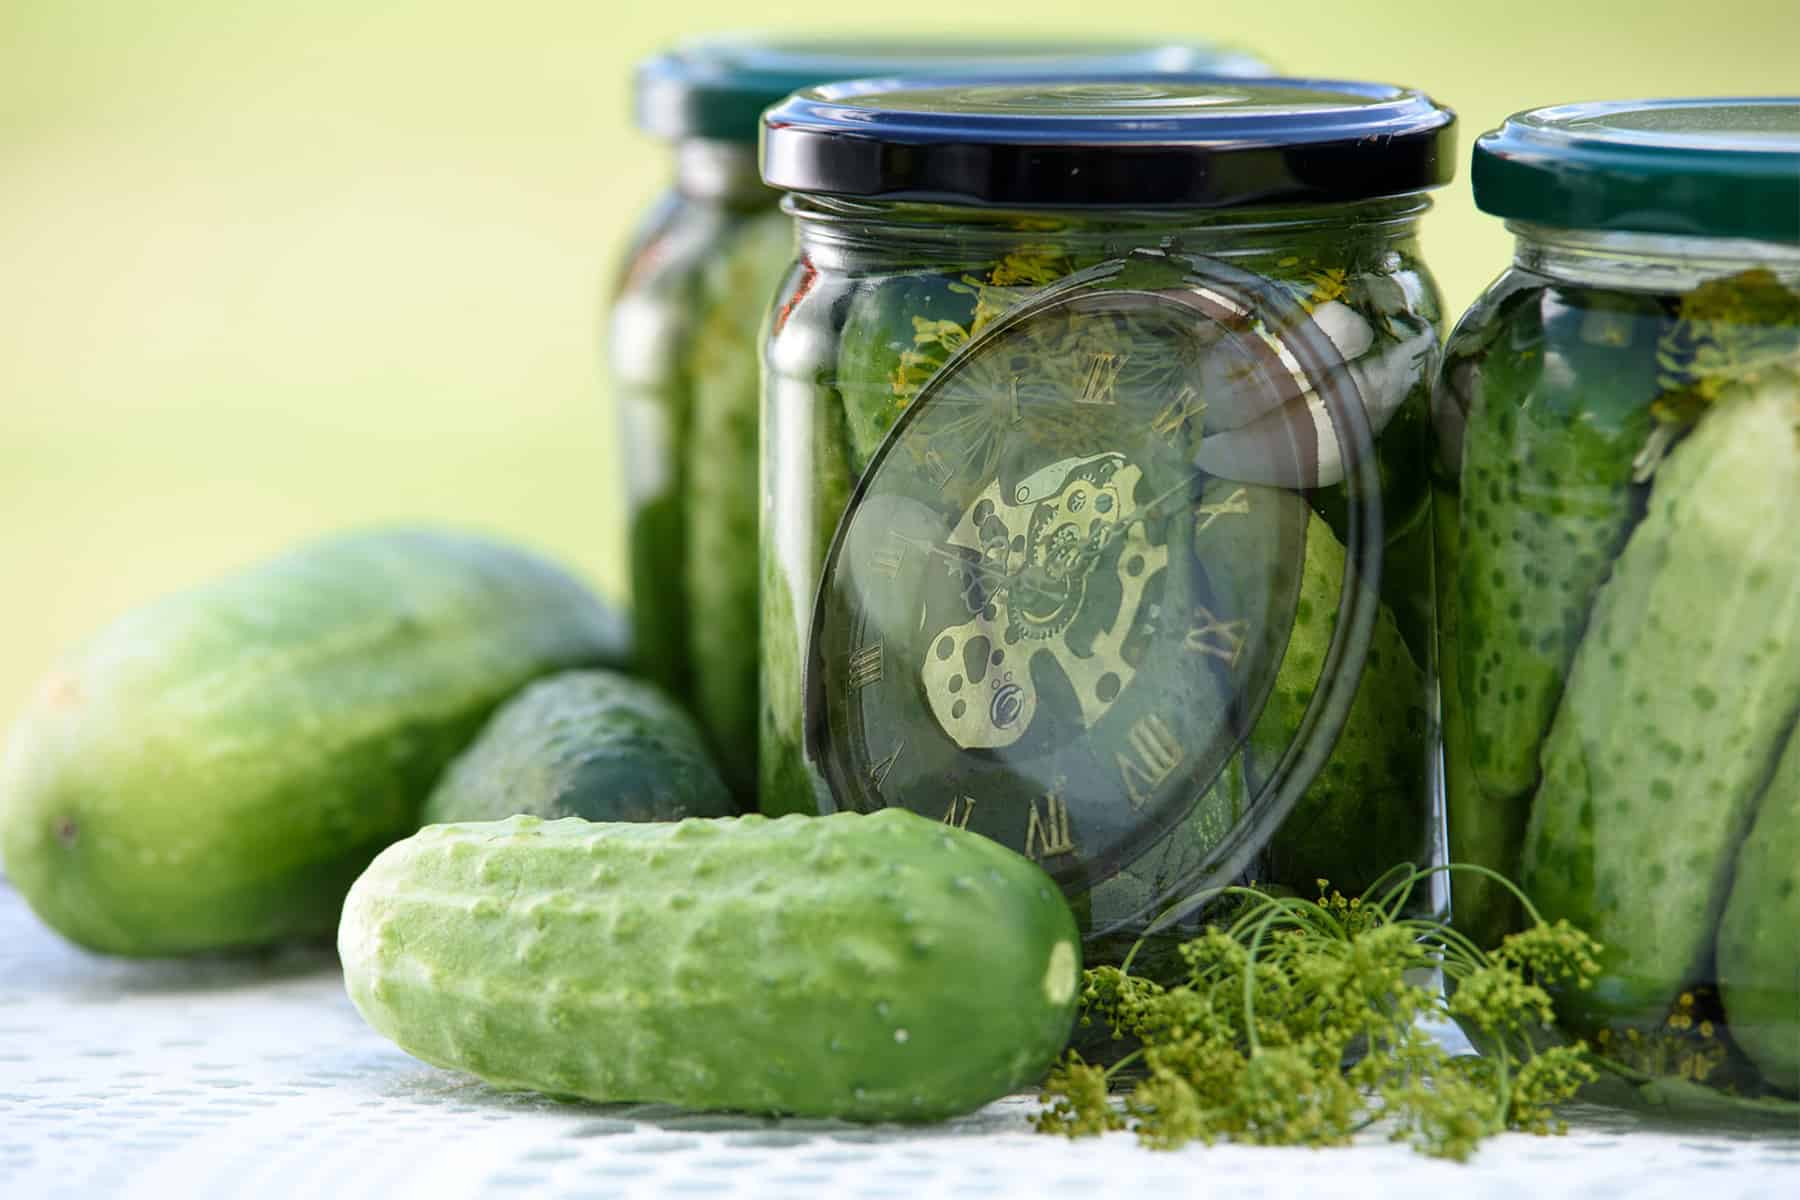 Pickles beside a pickle jar holding a pocket watch